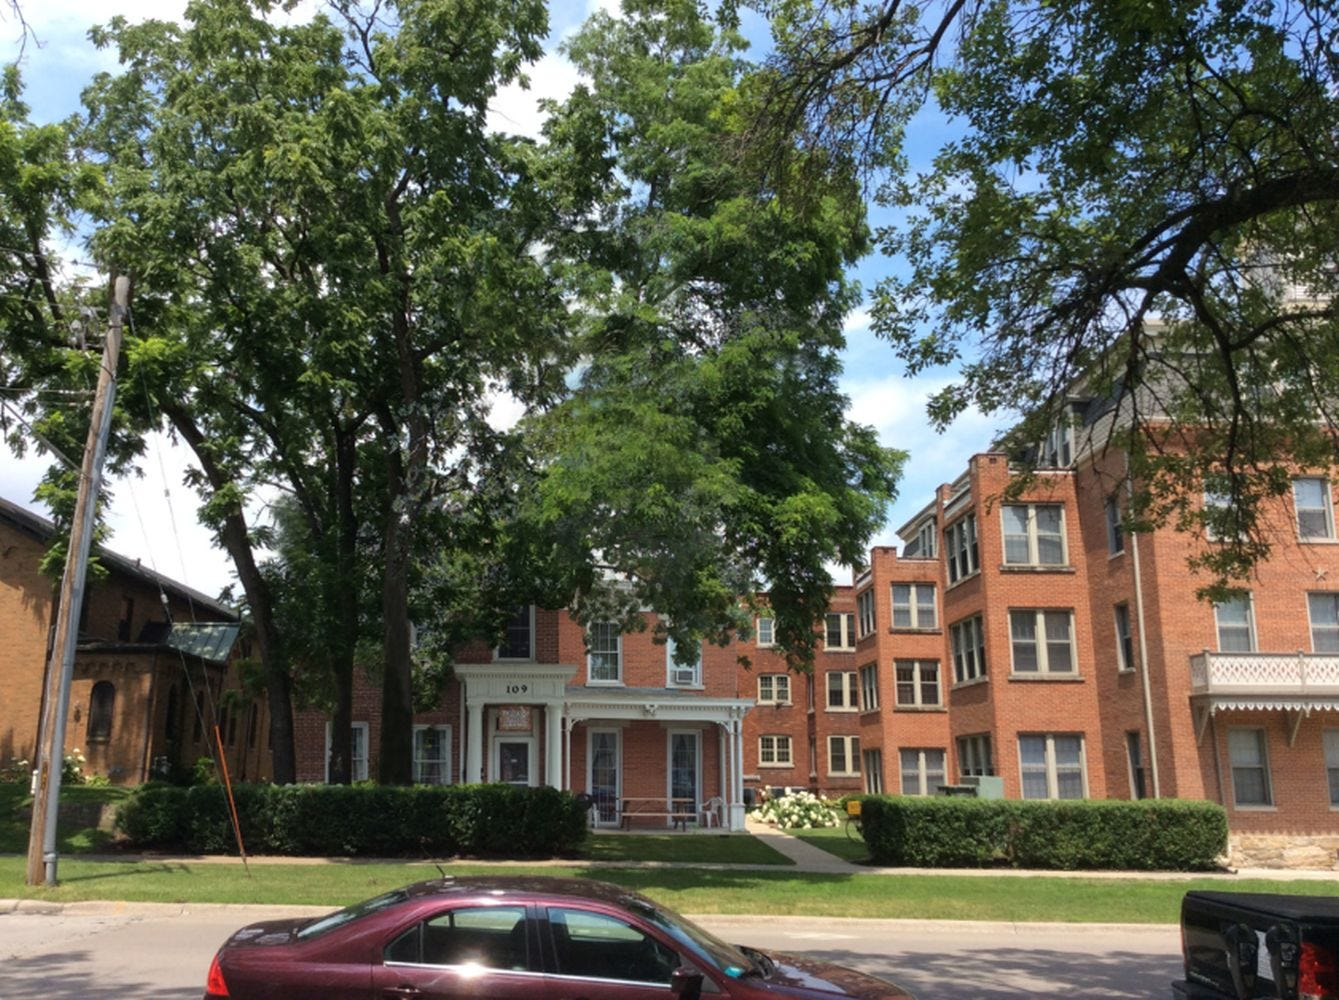 Church looking to move historic house before selling property to UI